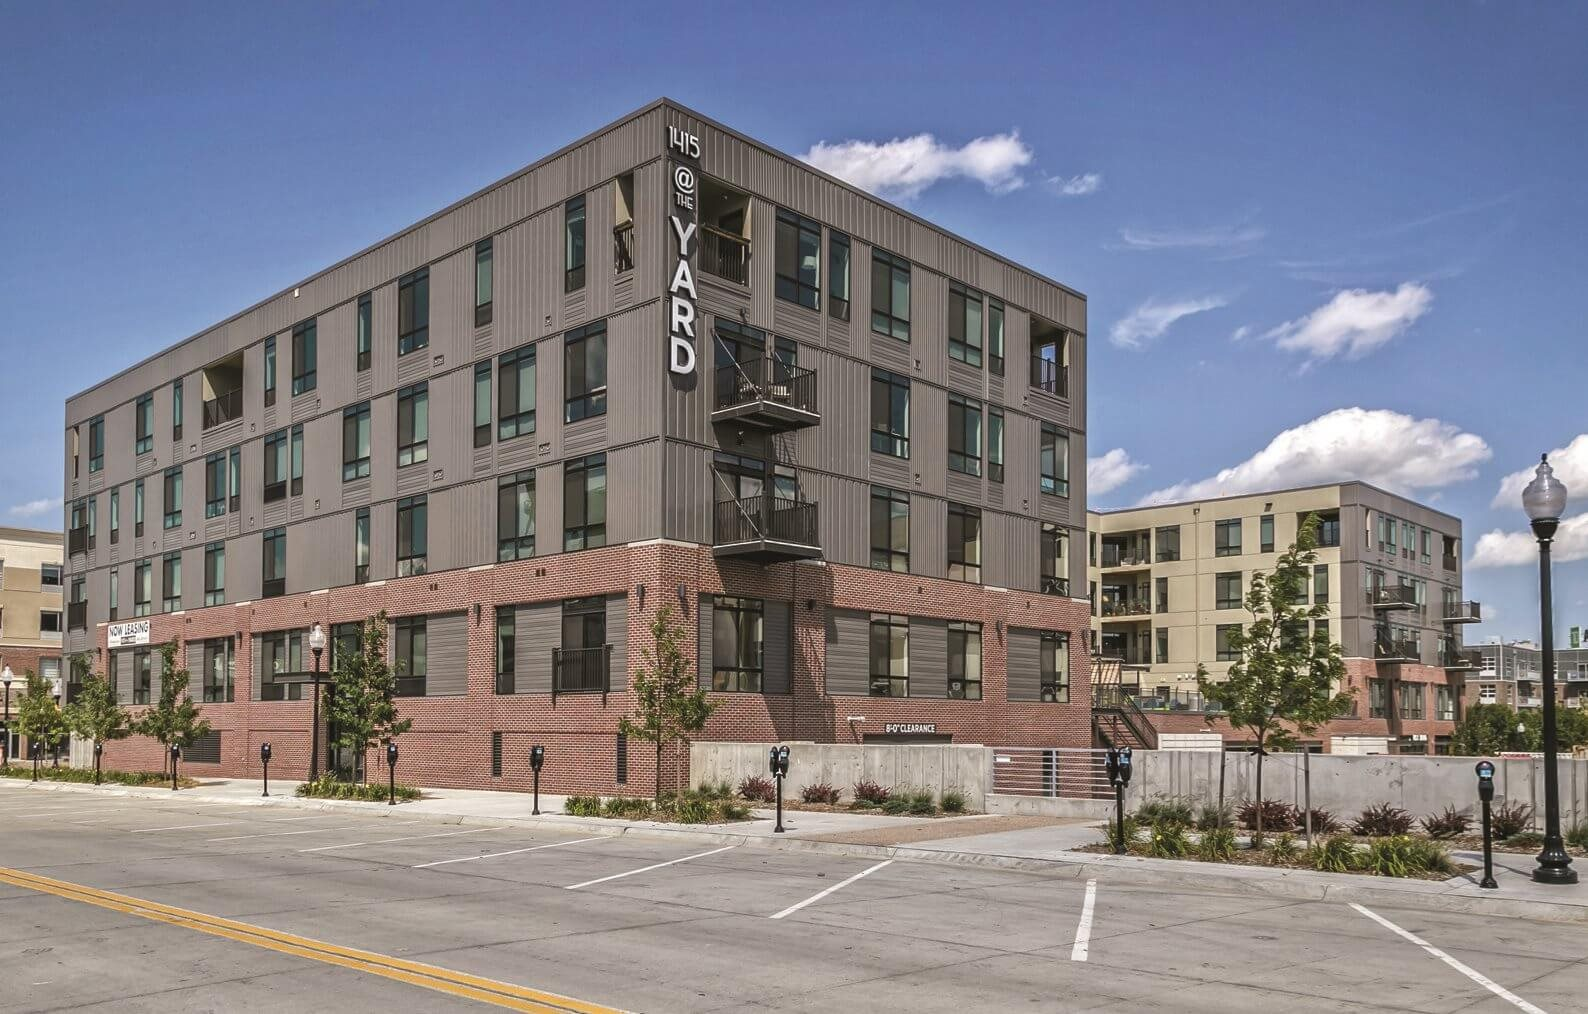 Building Exterior at 1415 @ The Yard, Omaha, NE